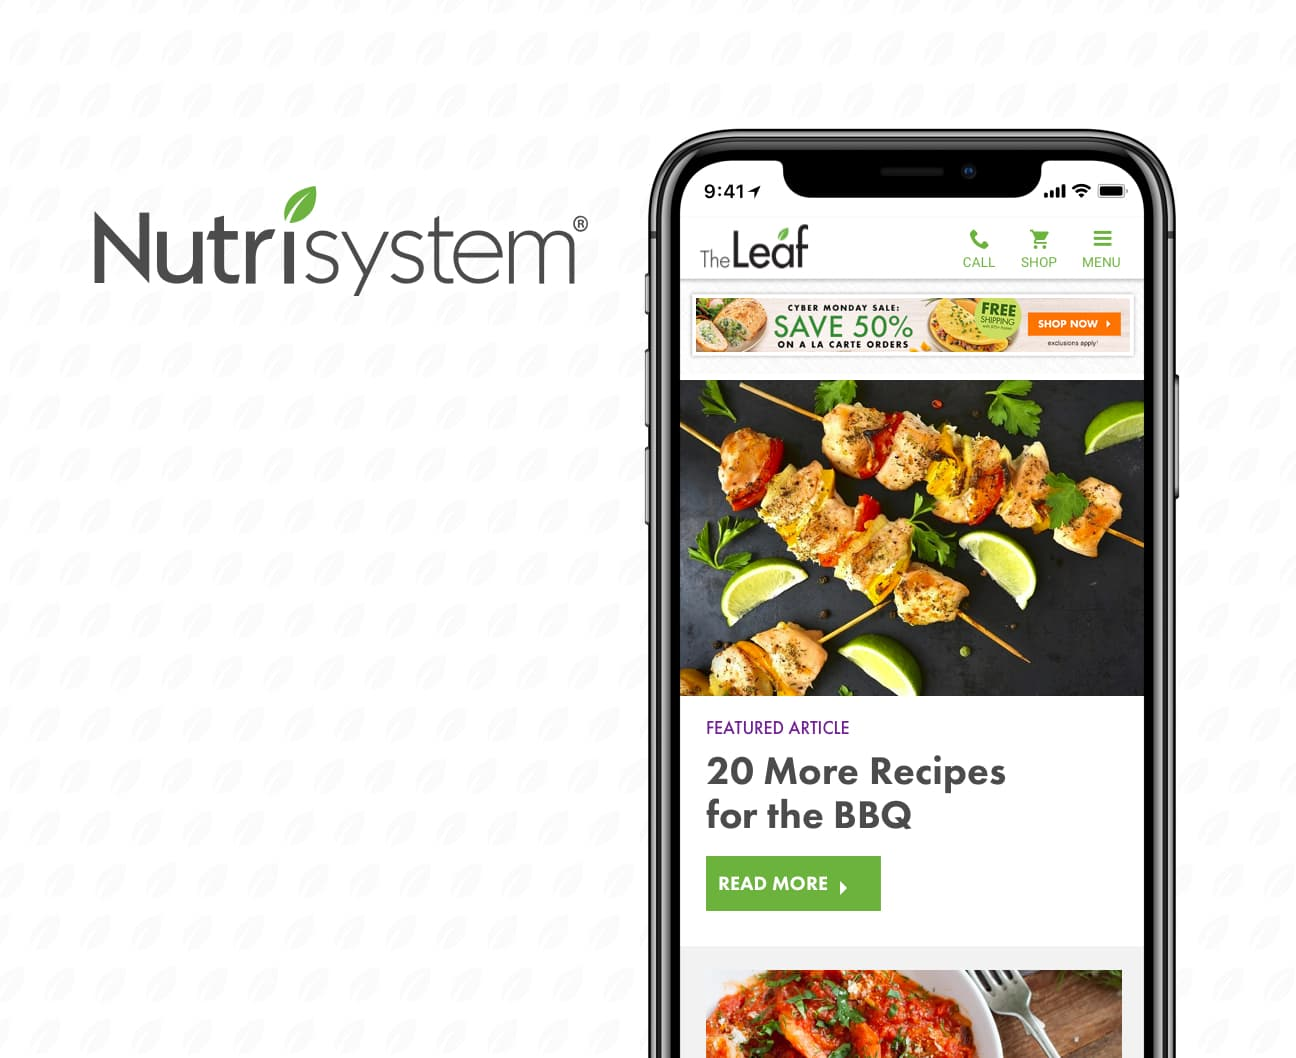 The Leaf by Nutrisystem